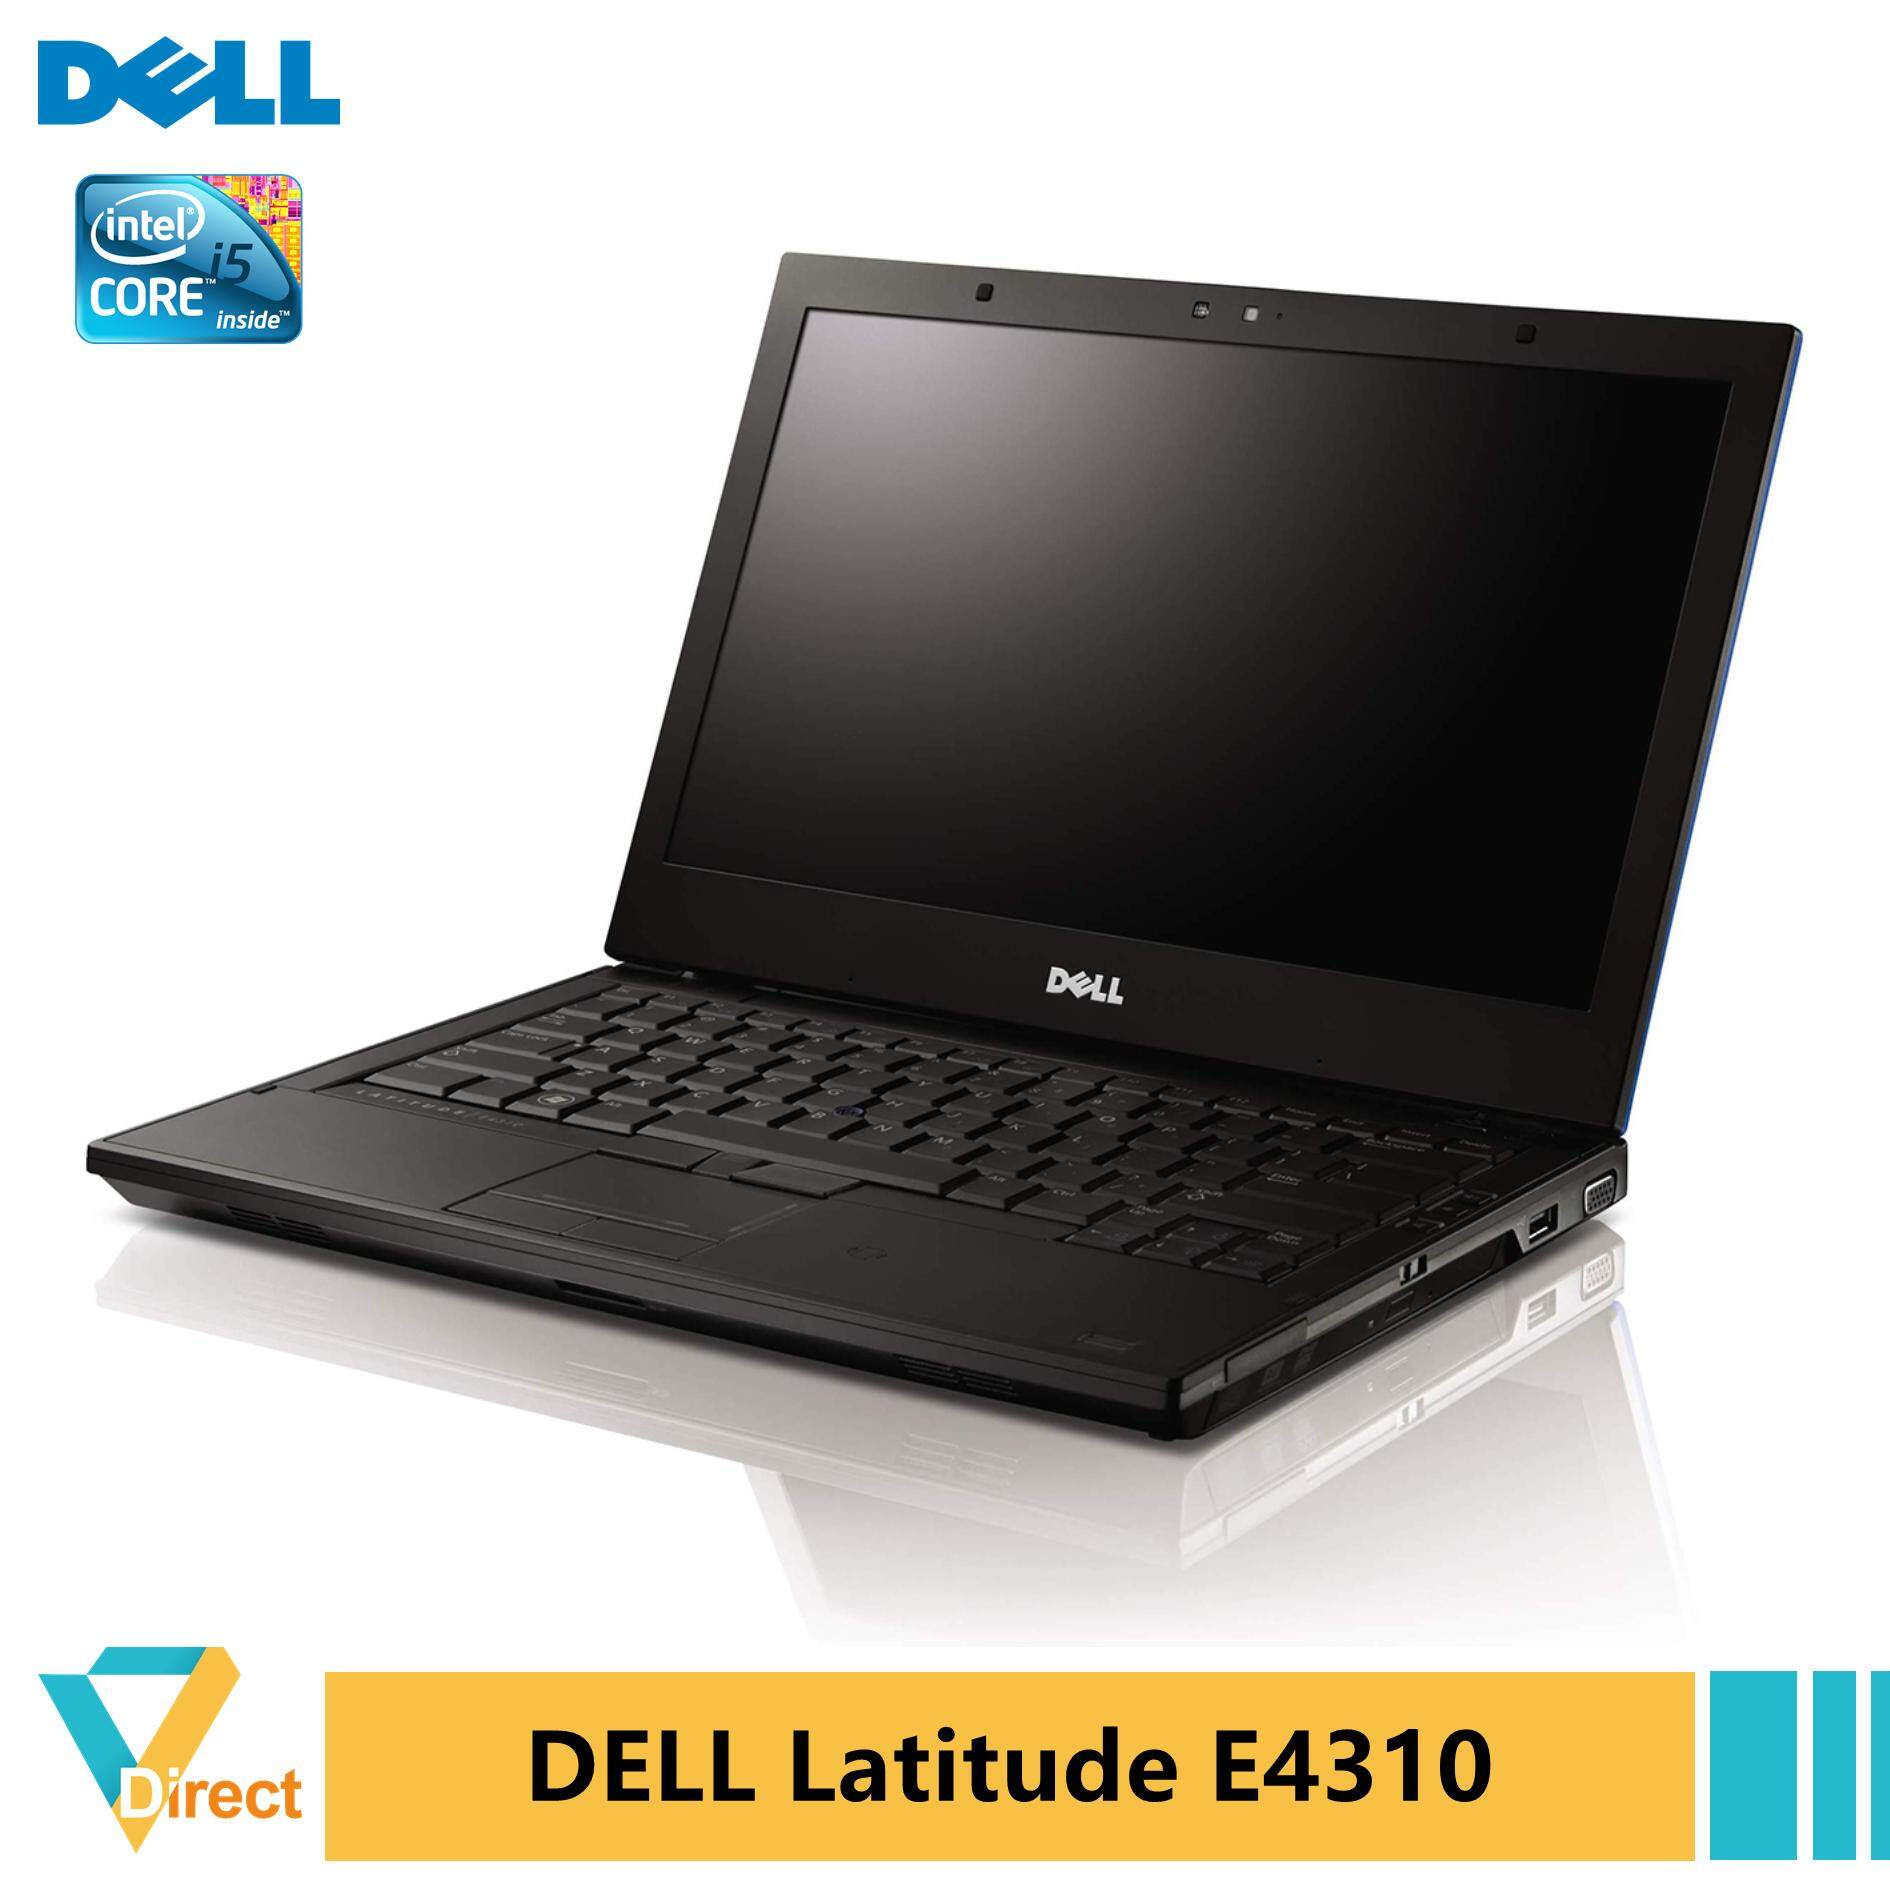 NEW BATTERY 8GB RAM 1TB SSD Core i5 Dell Latitude E4310 laptop PC  also 4GB 240GB 480GB Malaysia